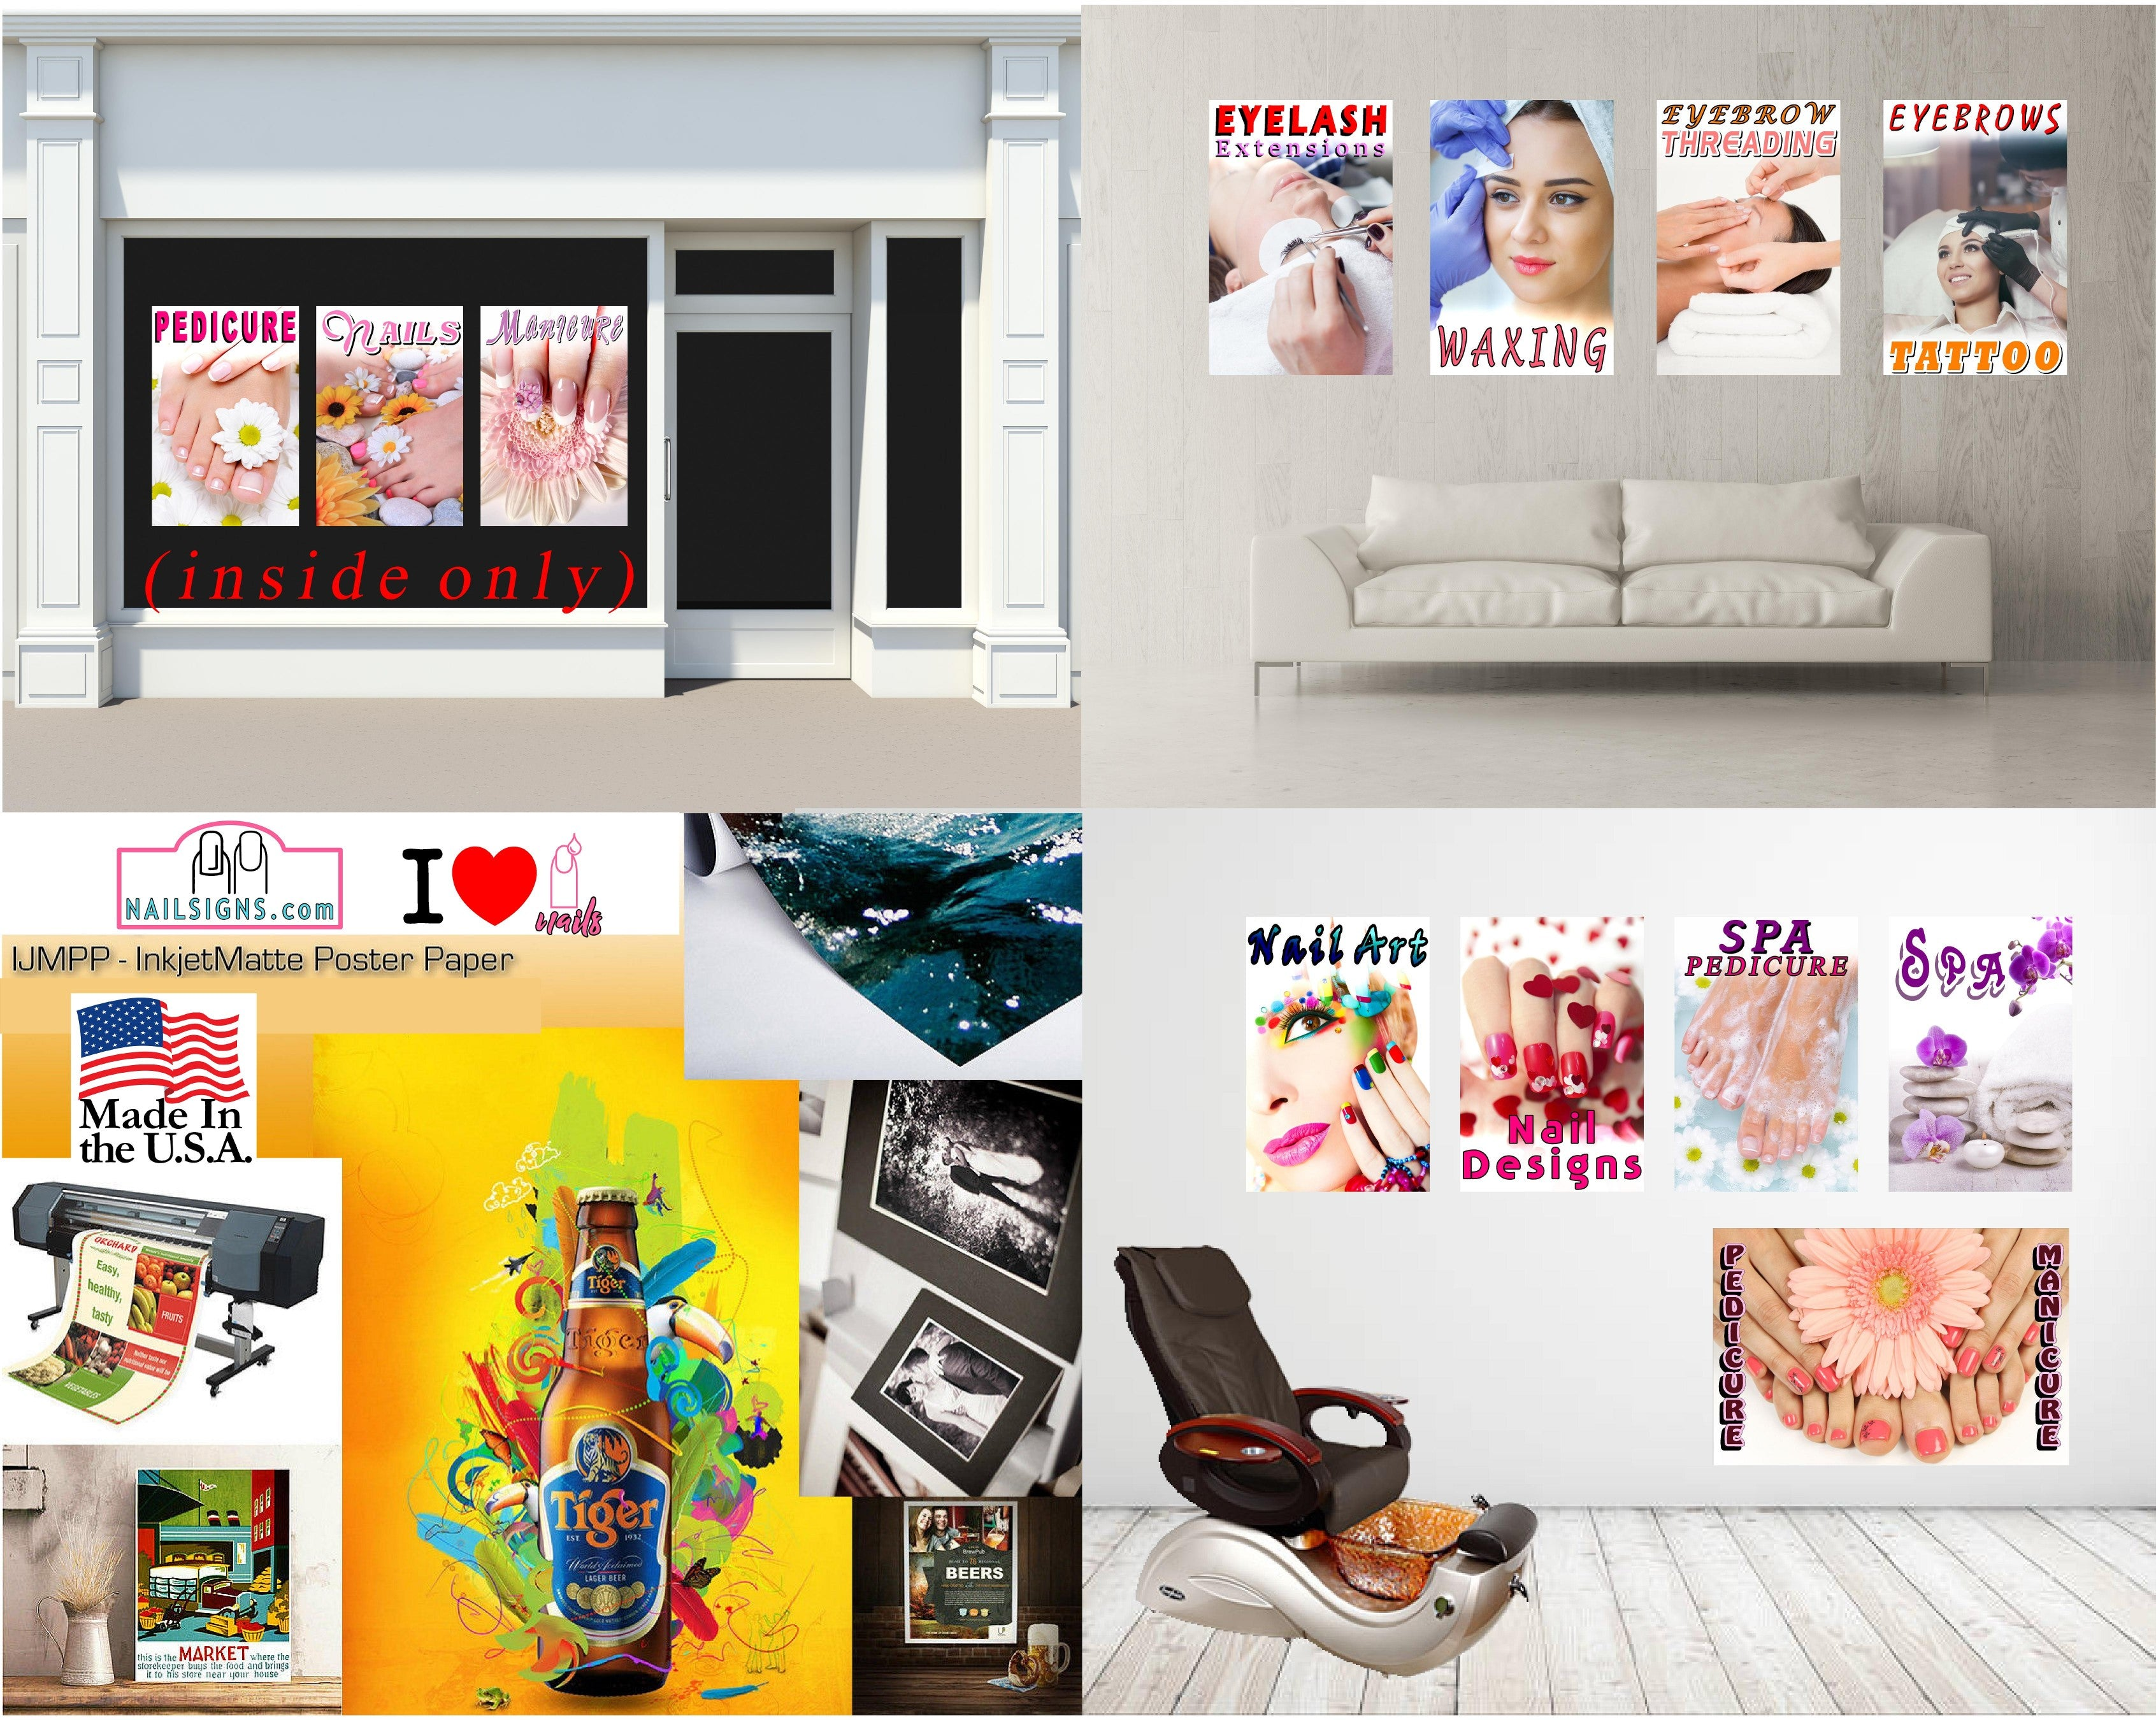 Nails 04 Photo-Realistic Paper Poster Premium Matte Interior Inside Sign Advertising Marketing Wall Window Non-Laminated Vertical